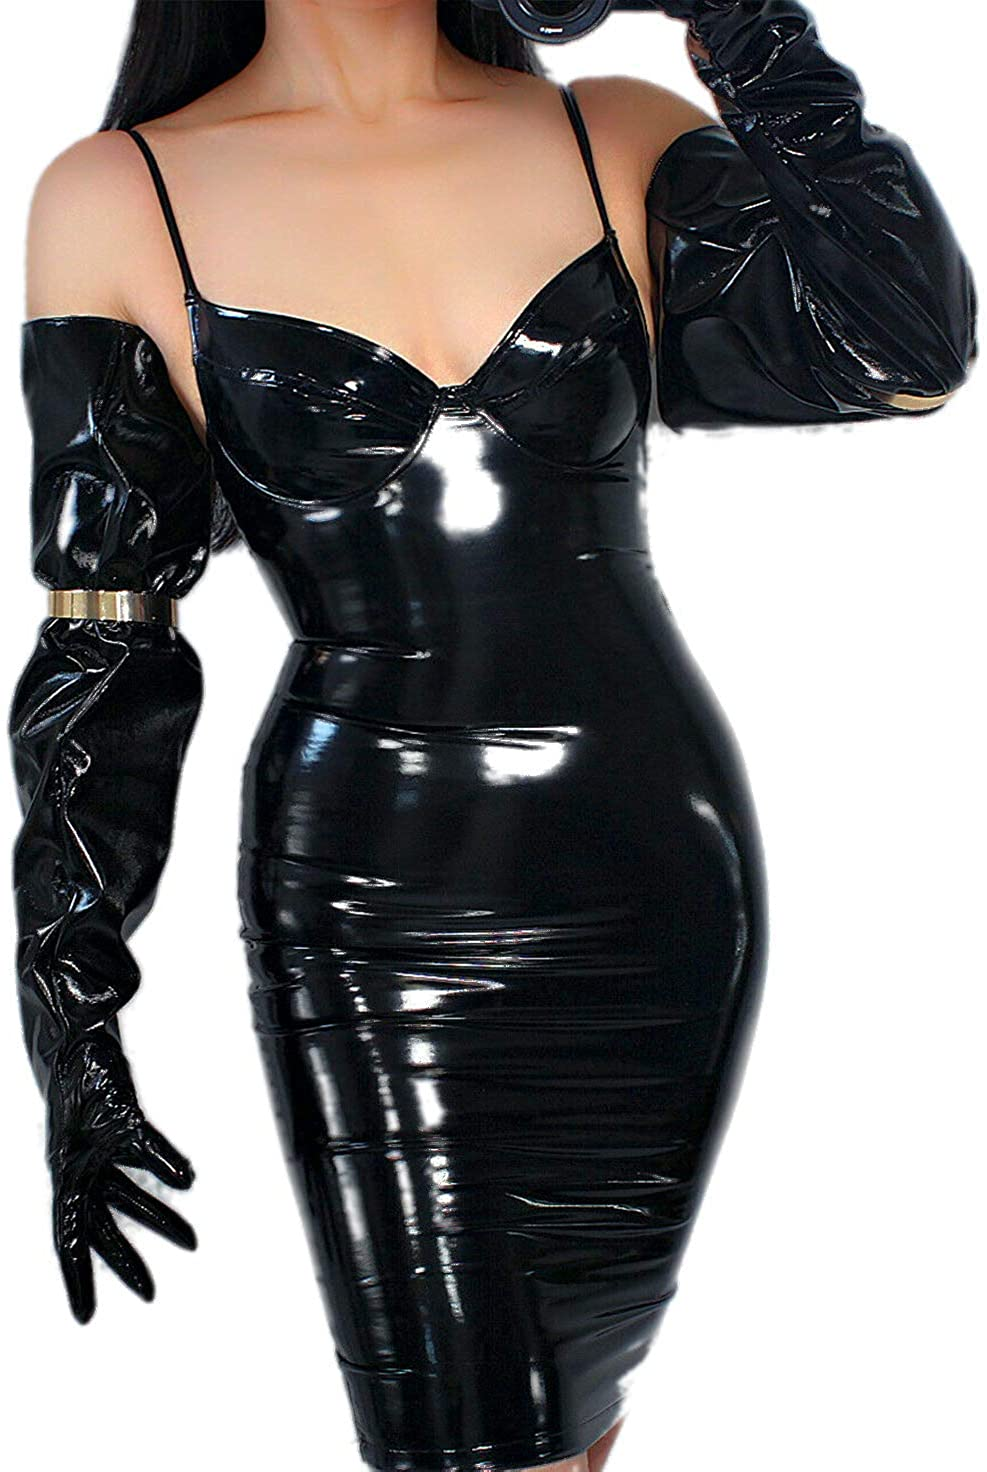 DooWay Unisex Patent Leather Long Gloves PU Shiny Wetlook Oversize Wide Balloon Puff Sleeves Large